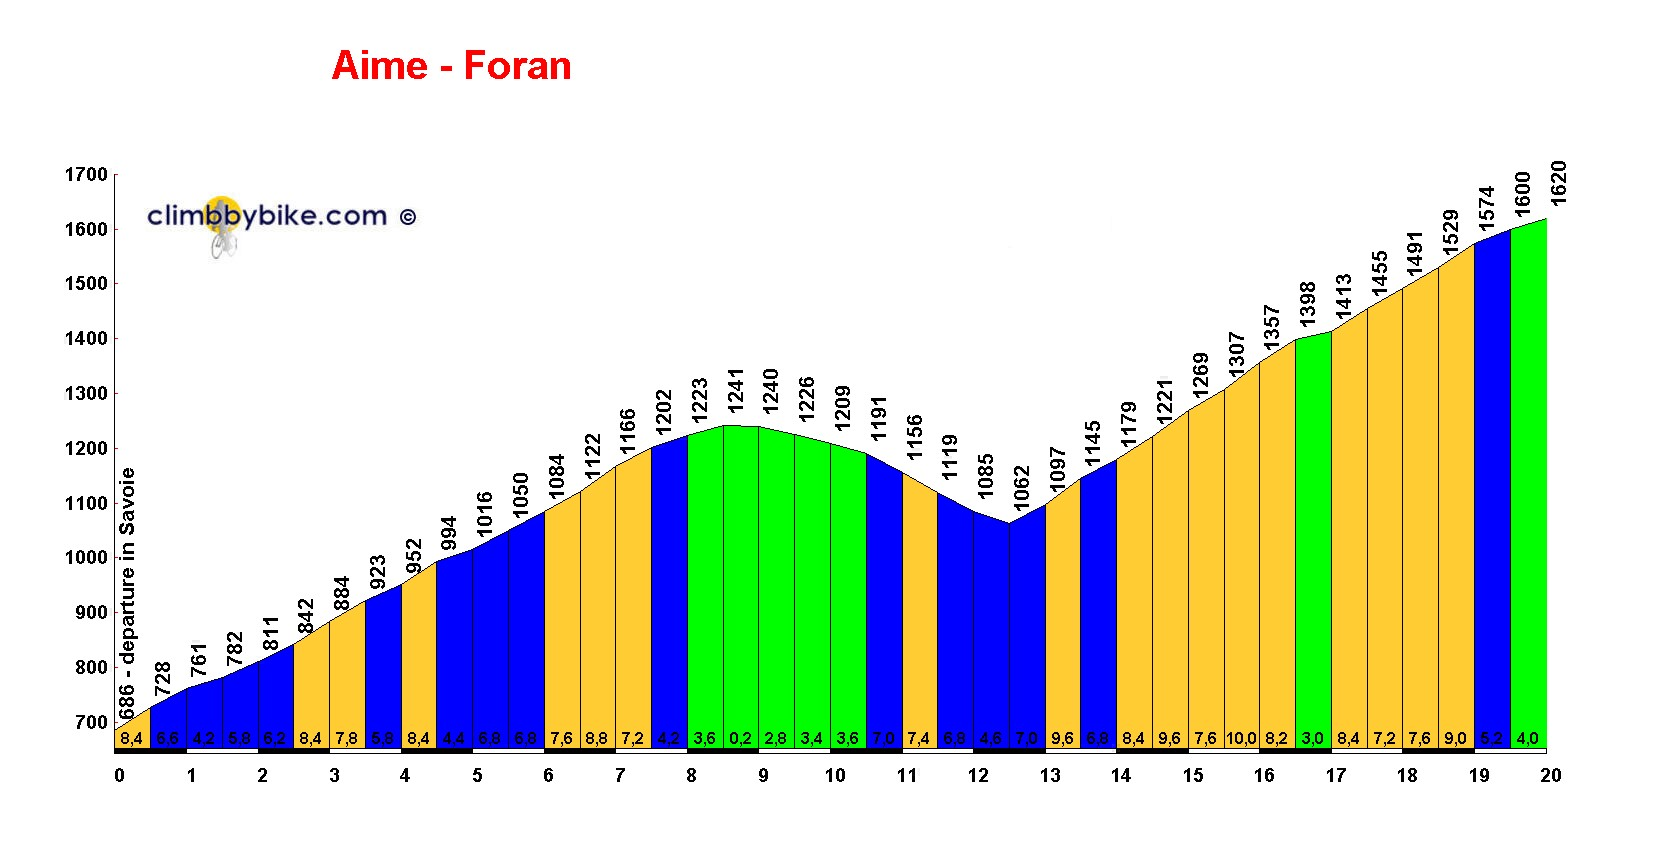 Elevation profile for Aime - Foran